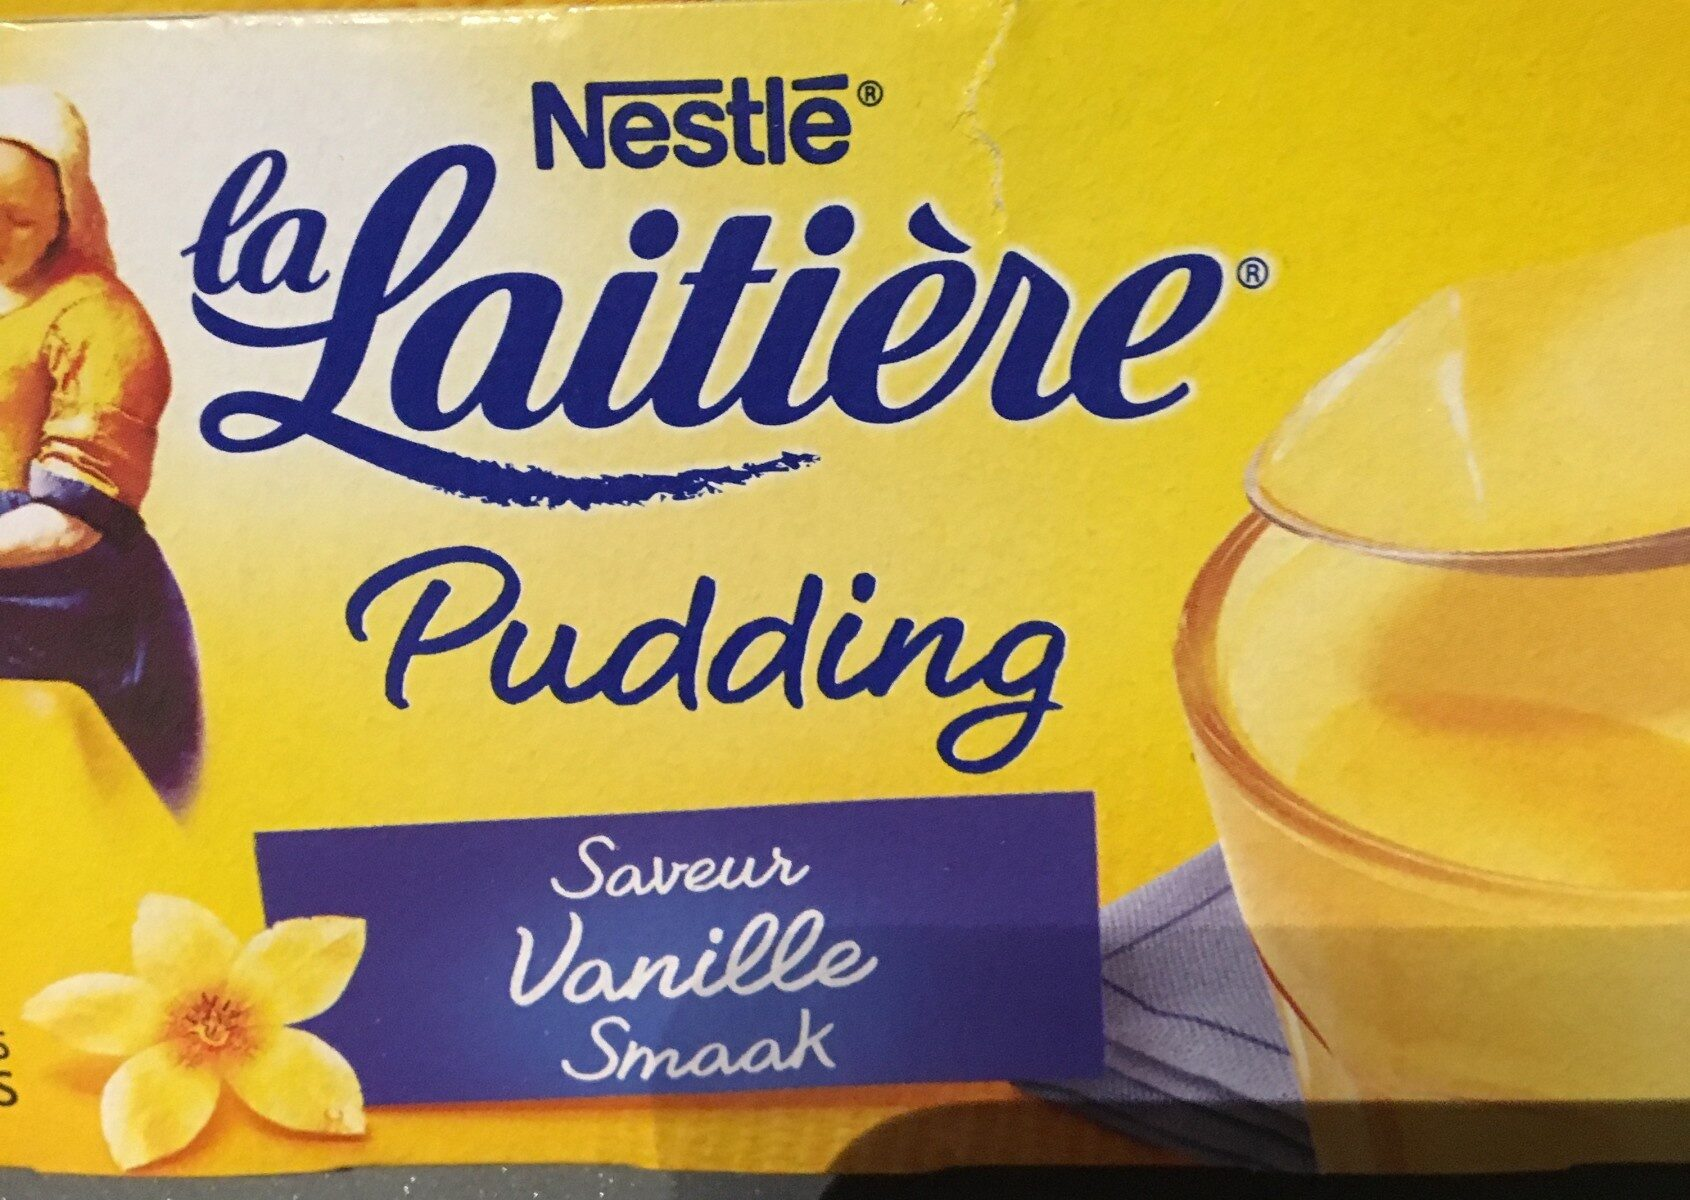 Pudding vanille - Product - fr